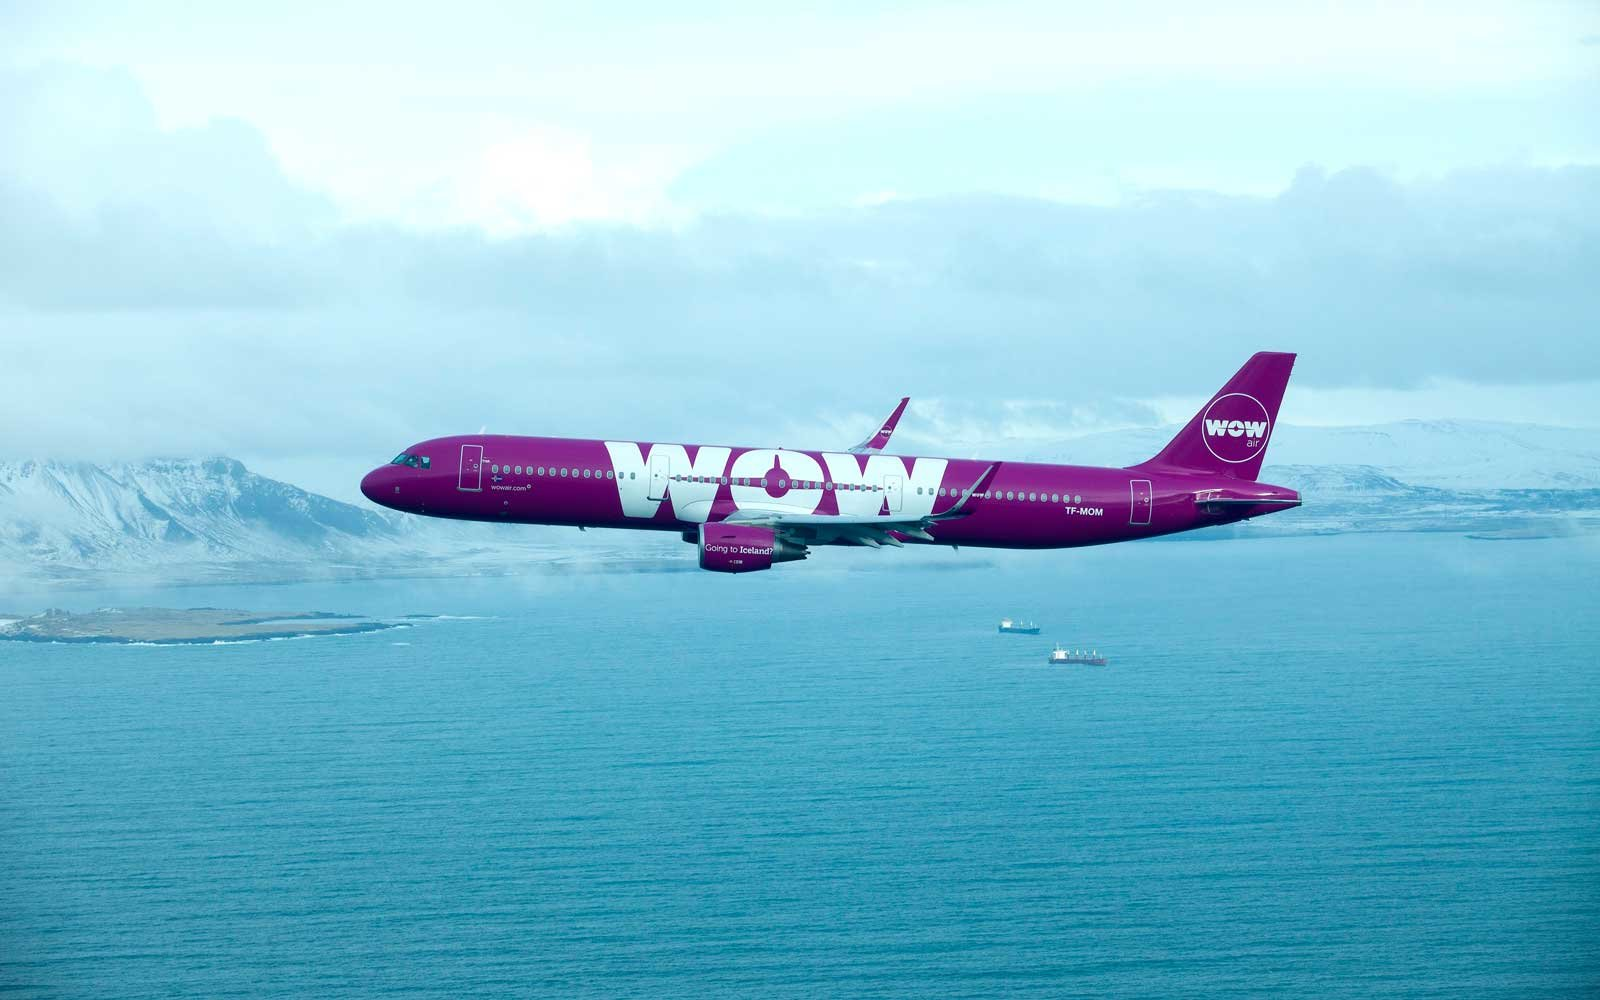 WOW Air Loses Bag Sends Car